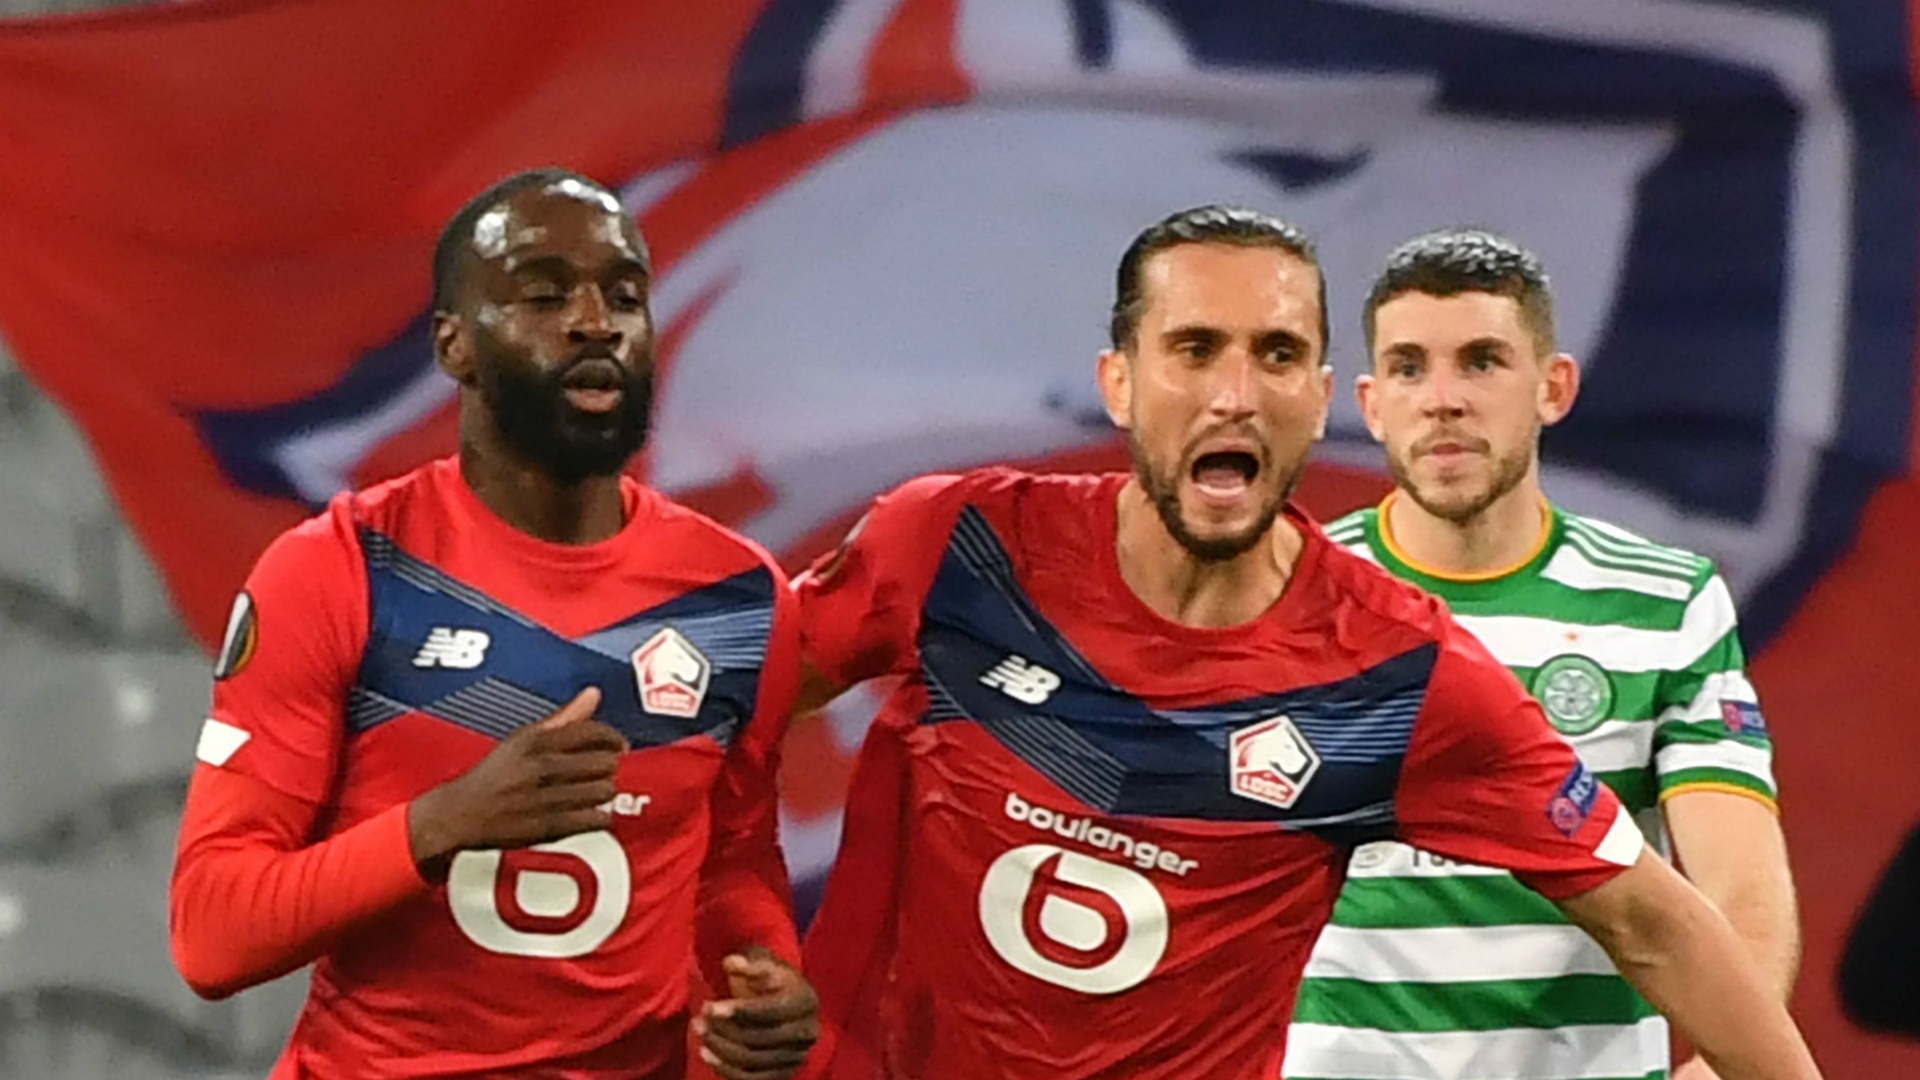 Lille 2-2 Celtic: Lennon's side throw away two-goal lead